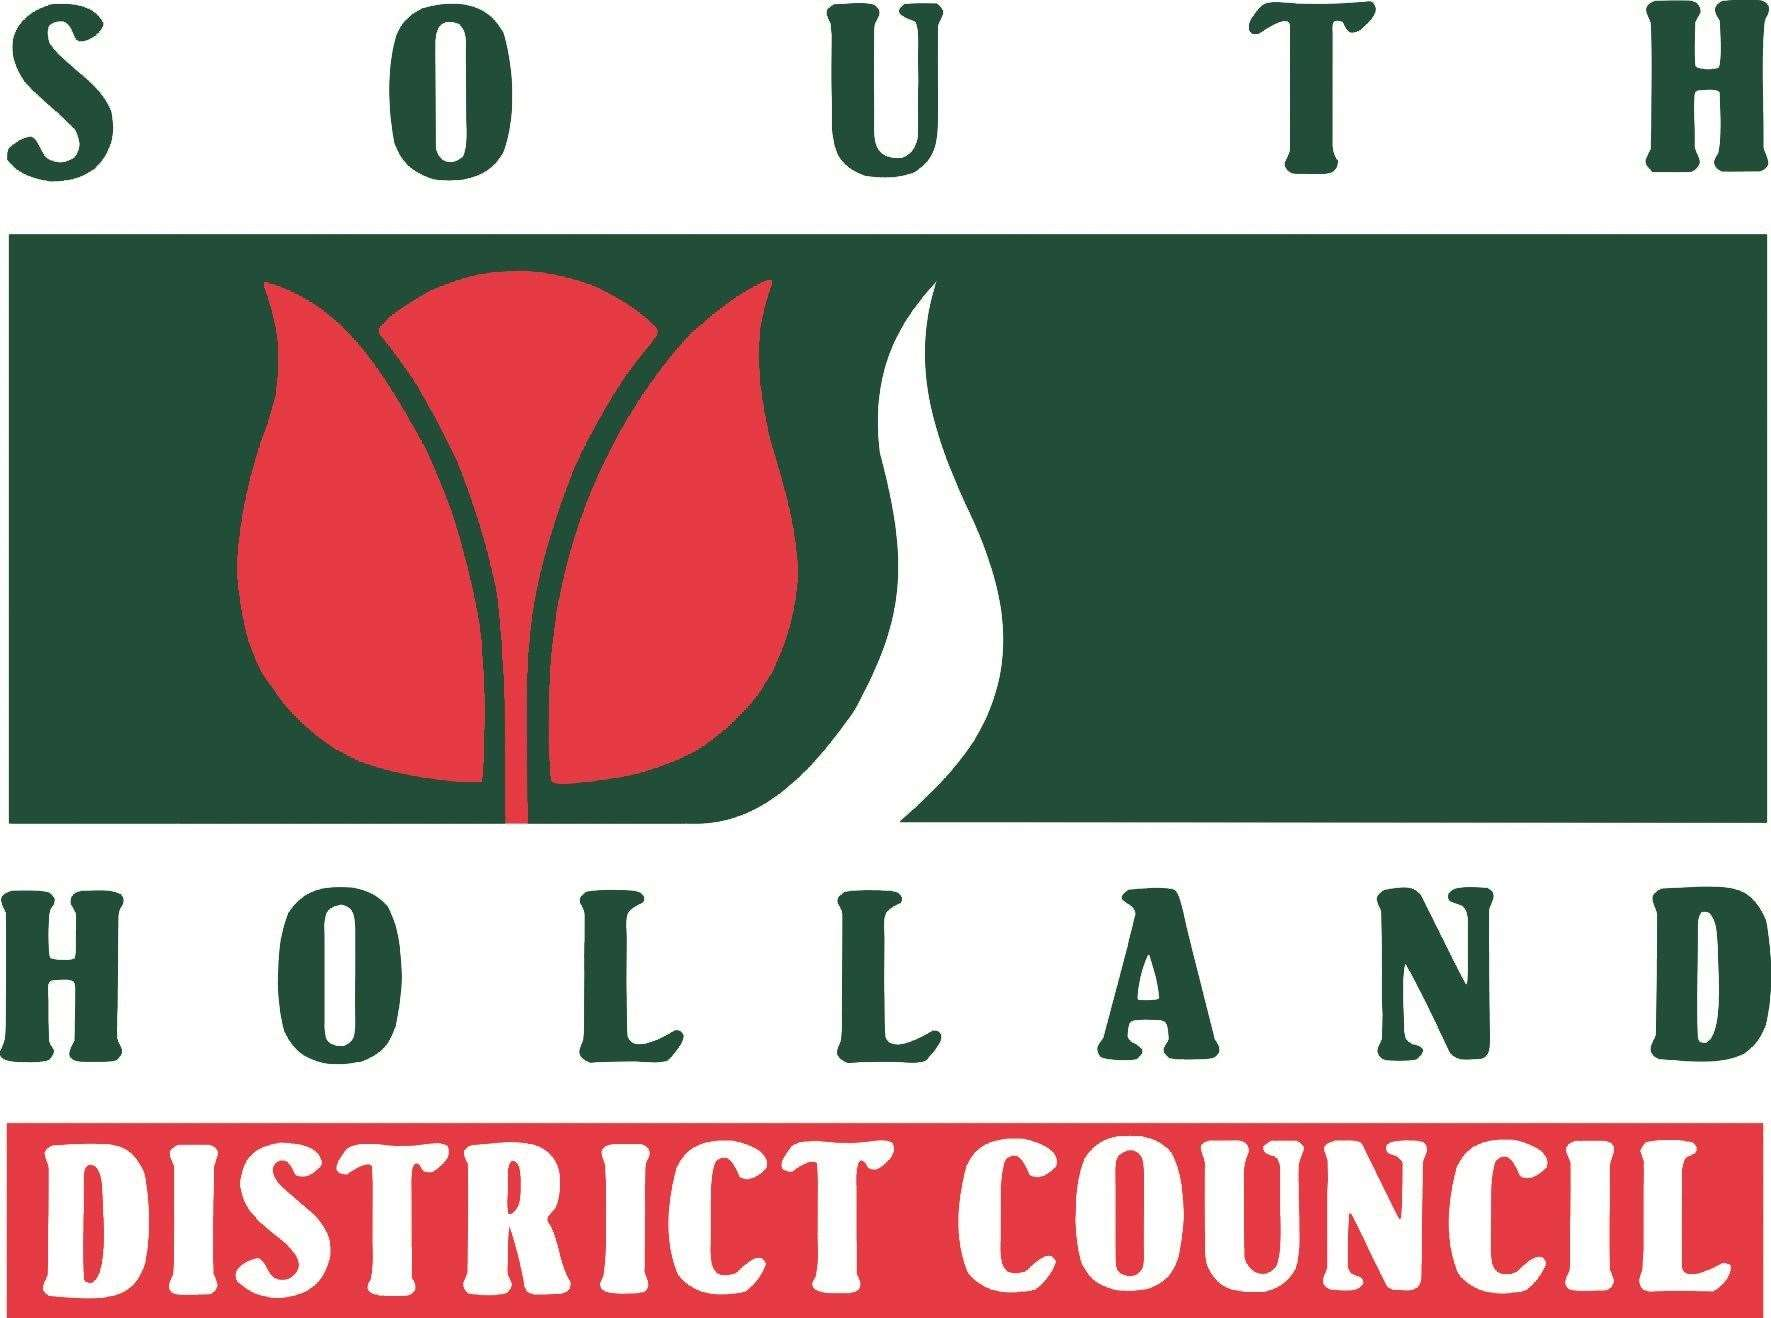 South Holland District Council has announced plans for 20 new affordable homes to be built in Spalding.